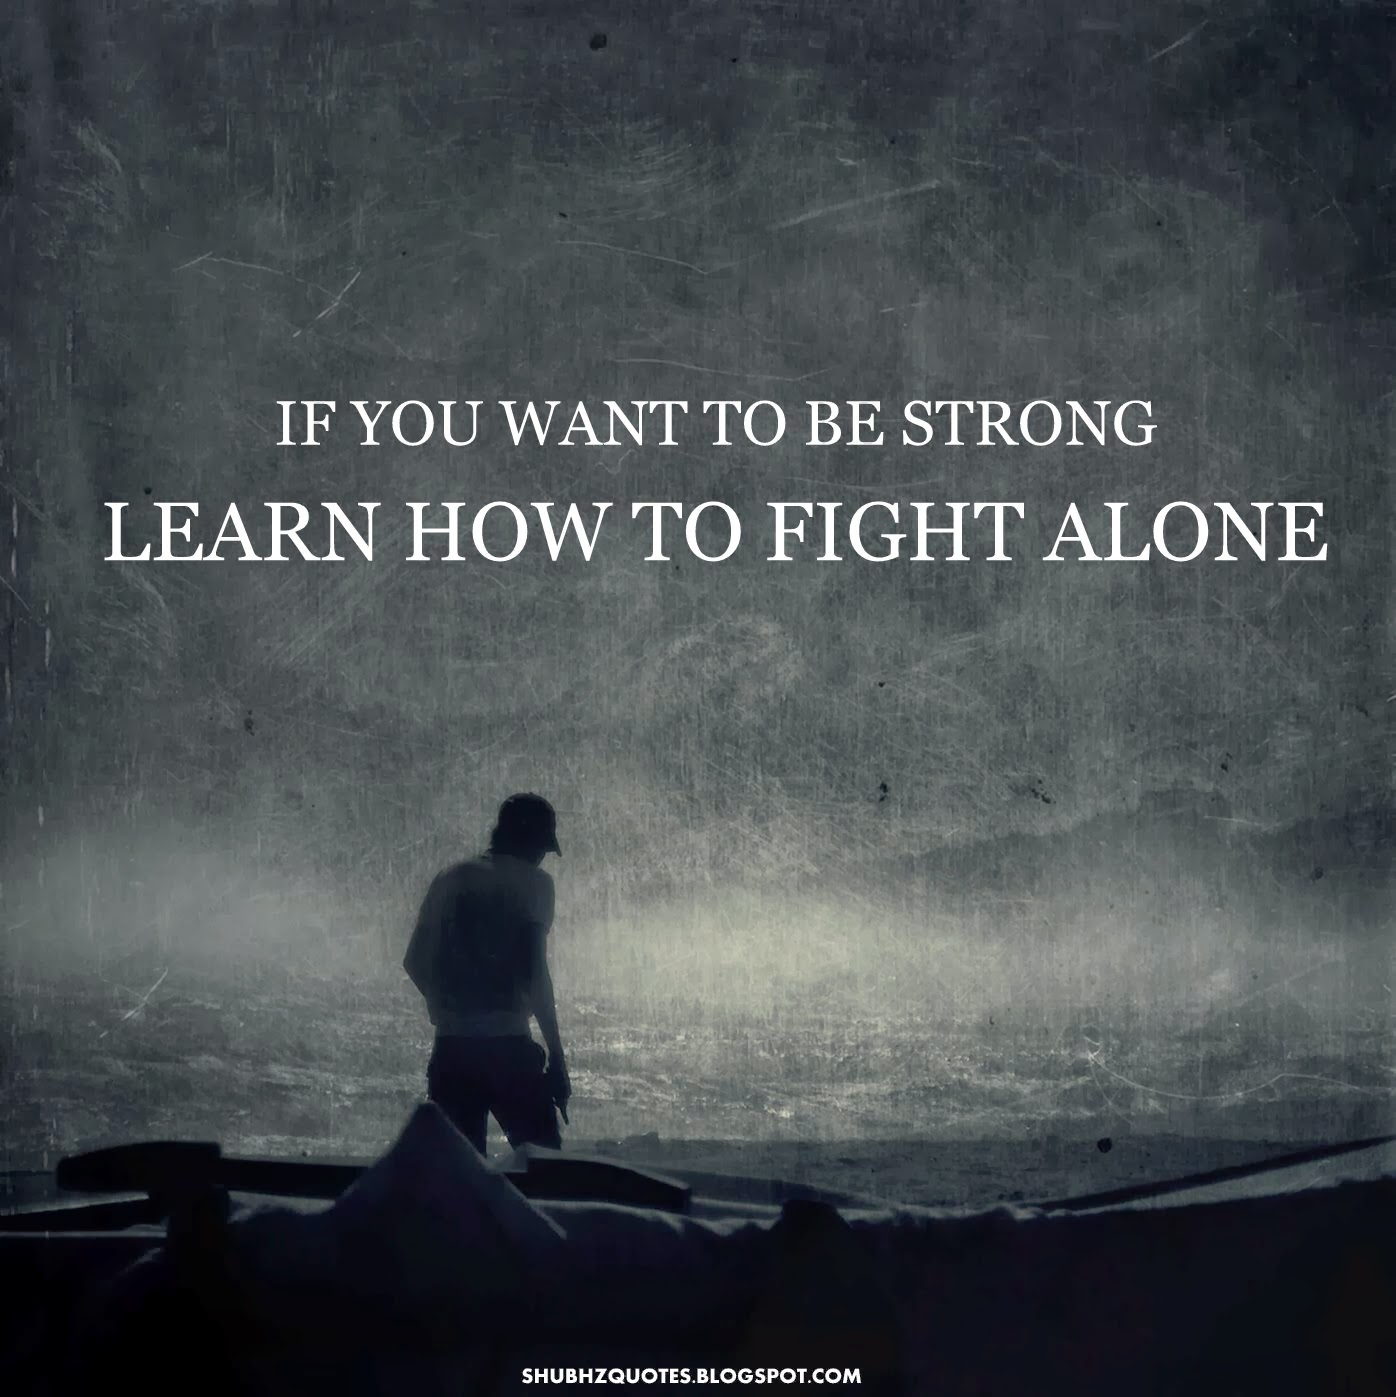 Quotes About Fighting: Fighting The Devil Quotes. QuotesGram